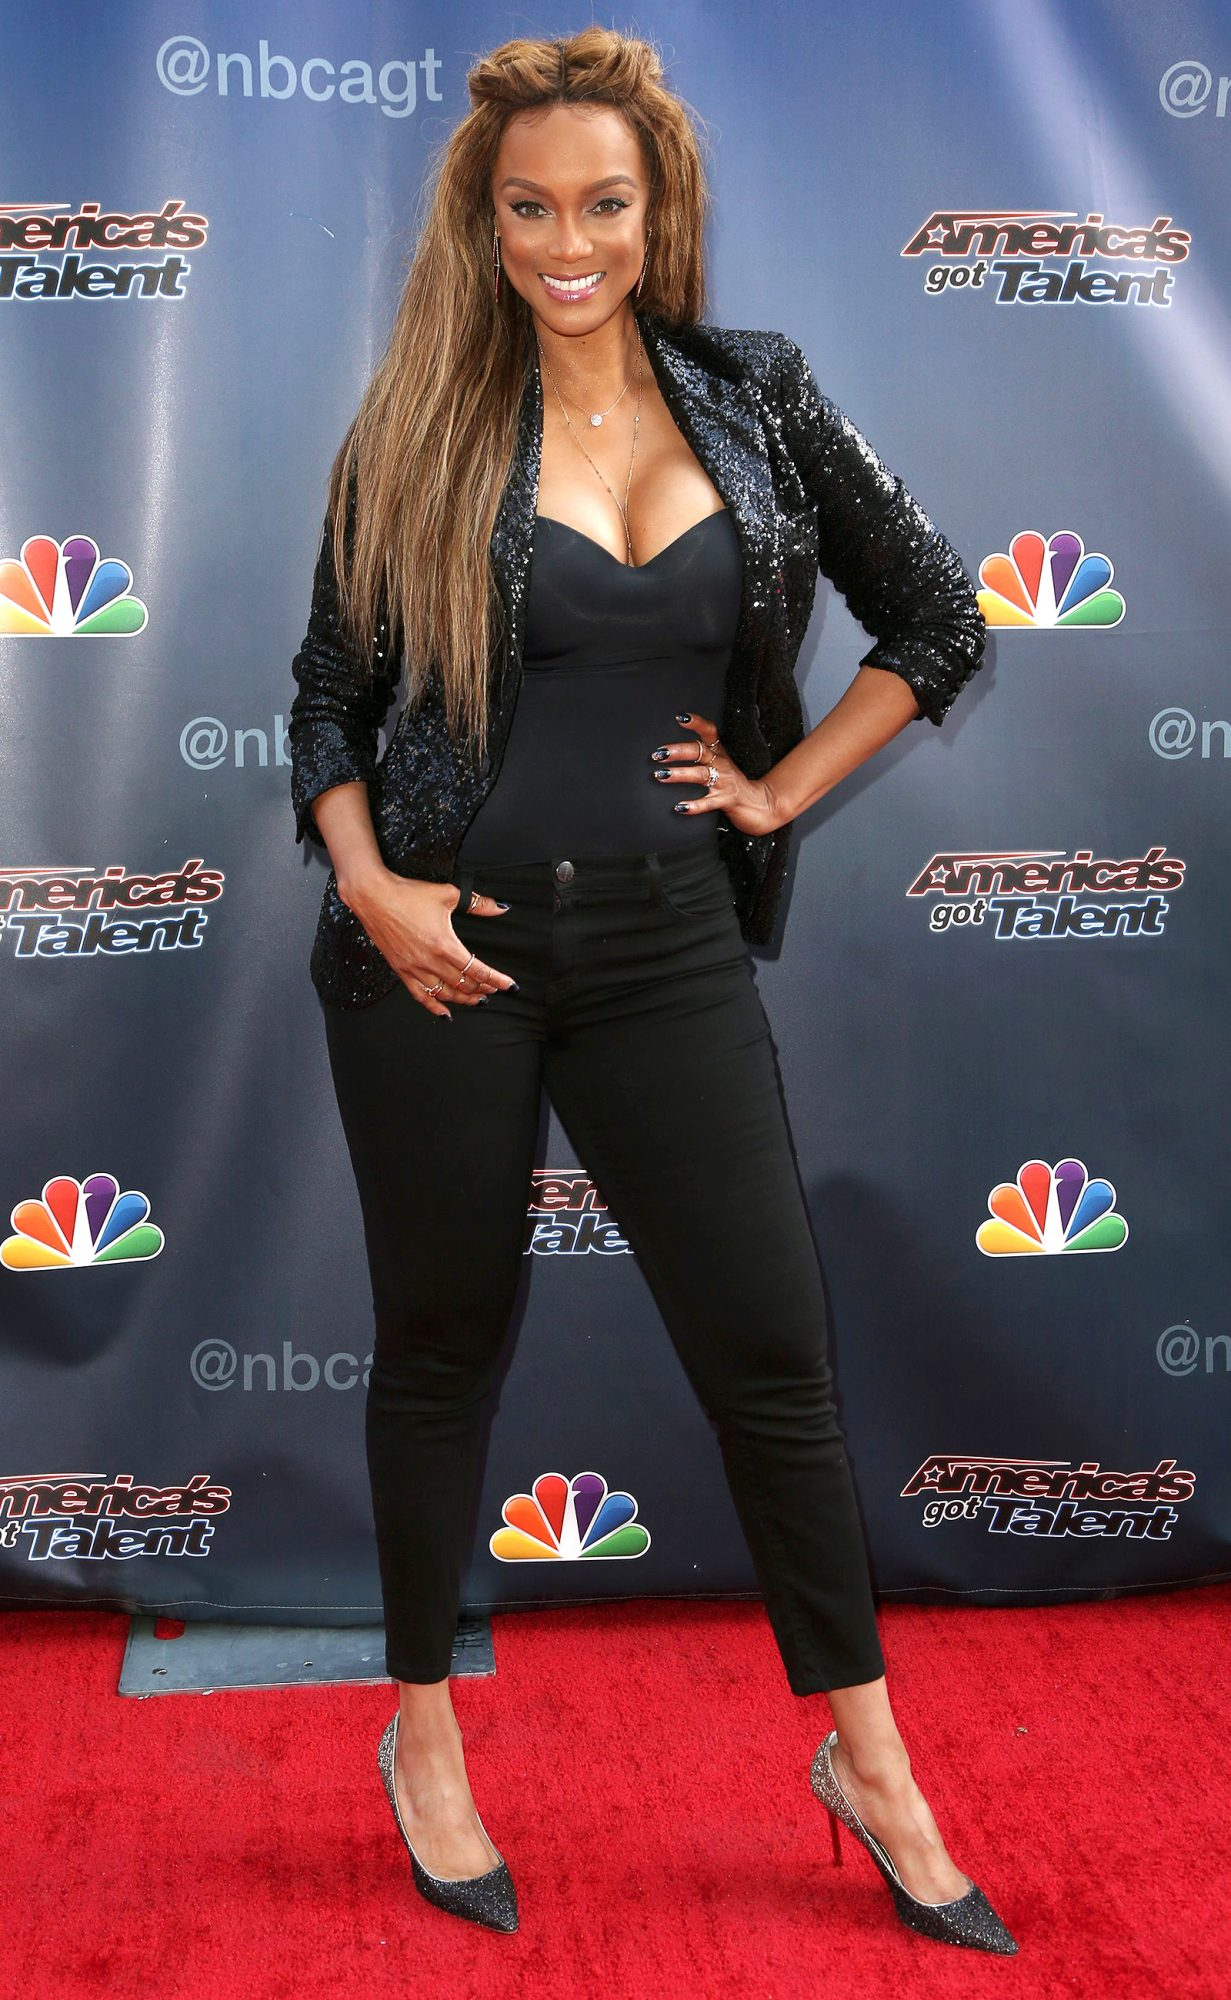 'America's Got Talent' TV show photocall, Los Angeles, USA - 05 Jul 2017